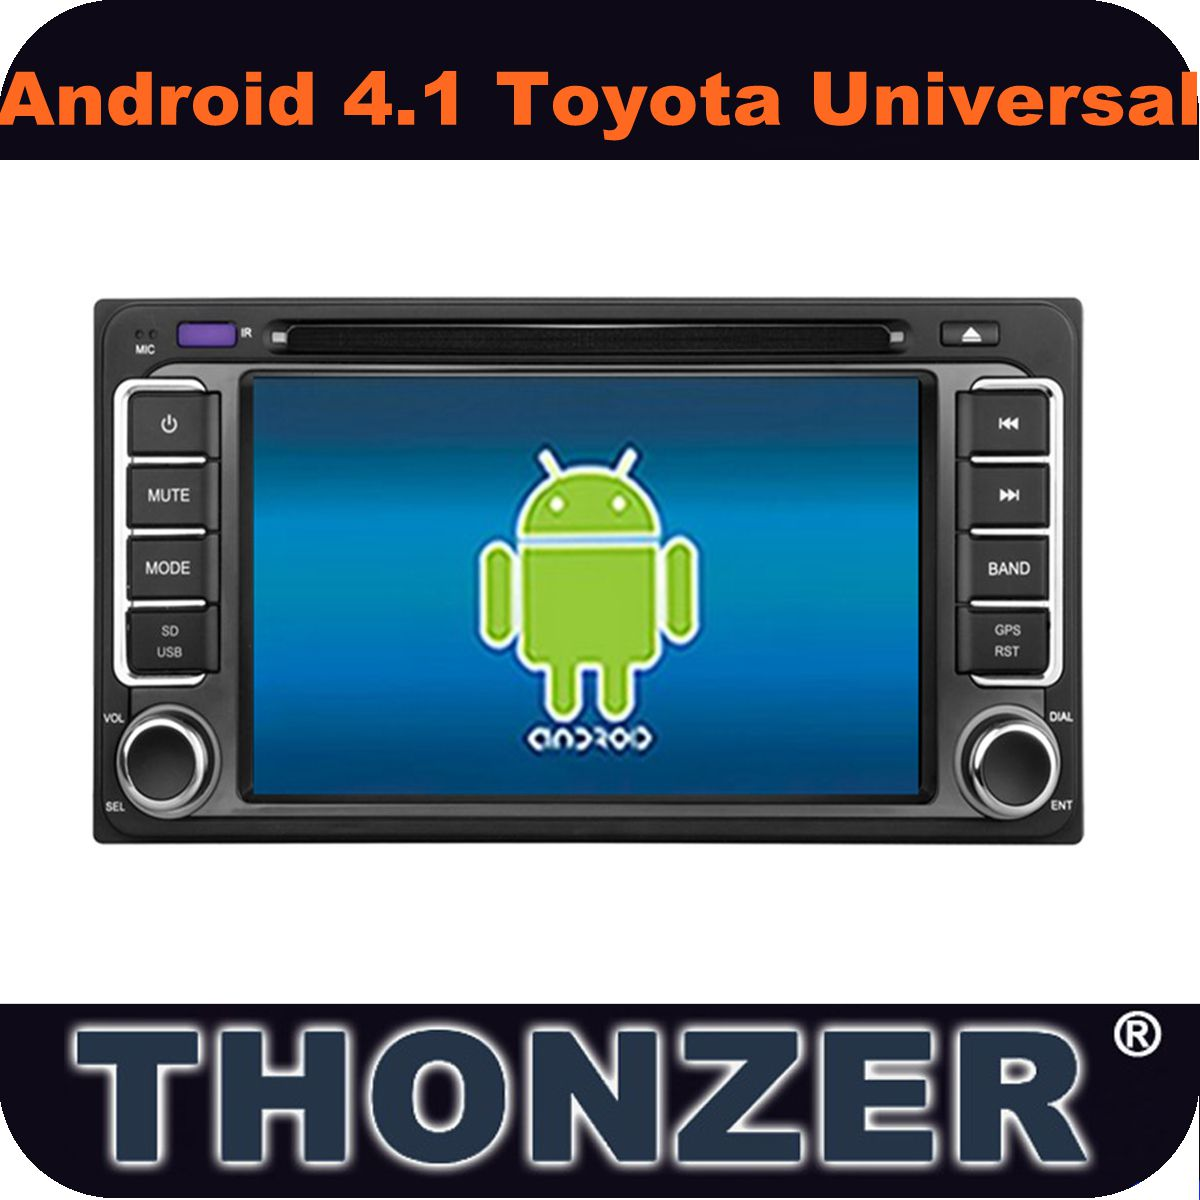 Pure Android 4.1 Car PC Toyota Universal Car DVD+GPS+Wifi+Bluetooth+Dual core +1GB CPU+DDR3 1GB +8GB Flash